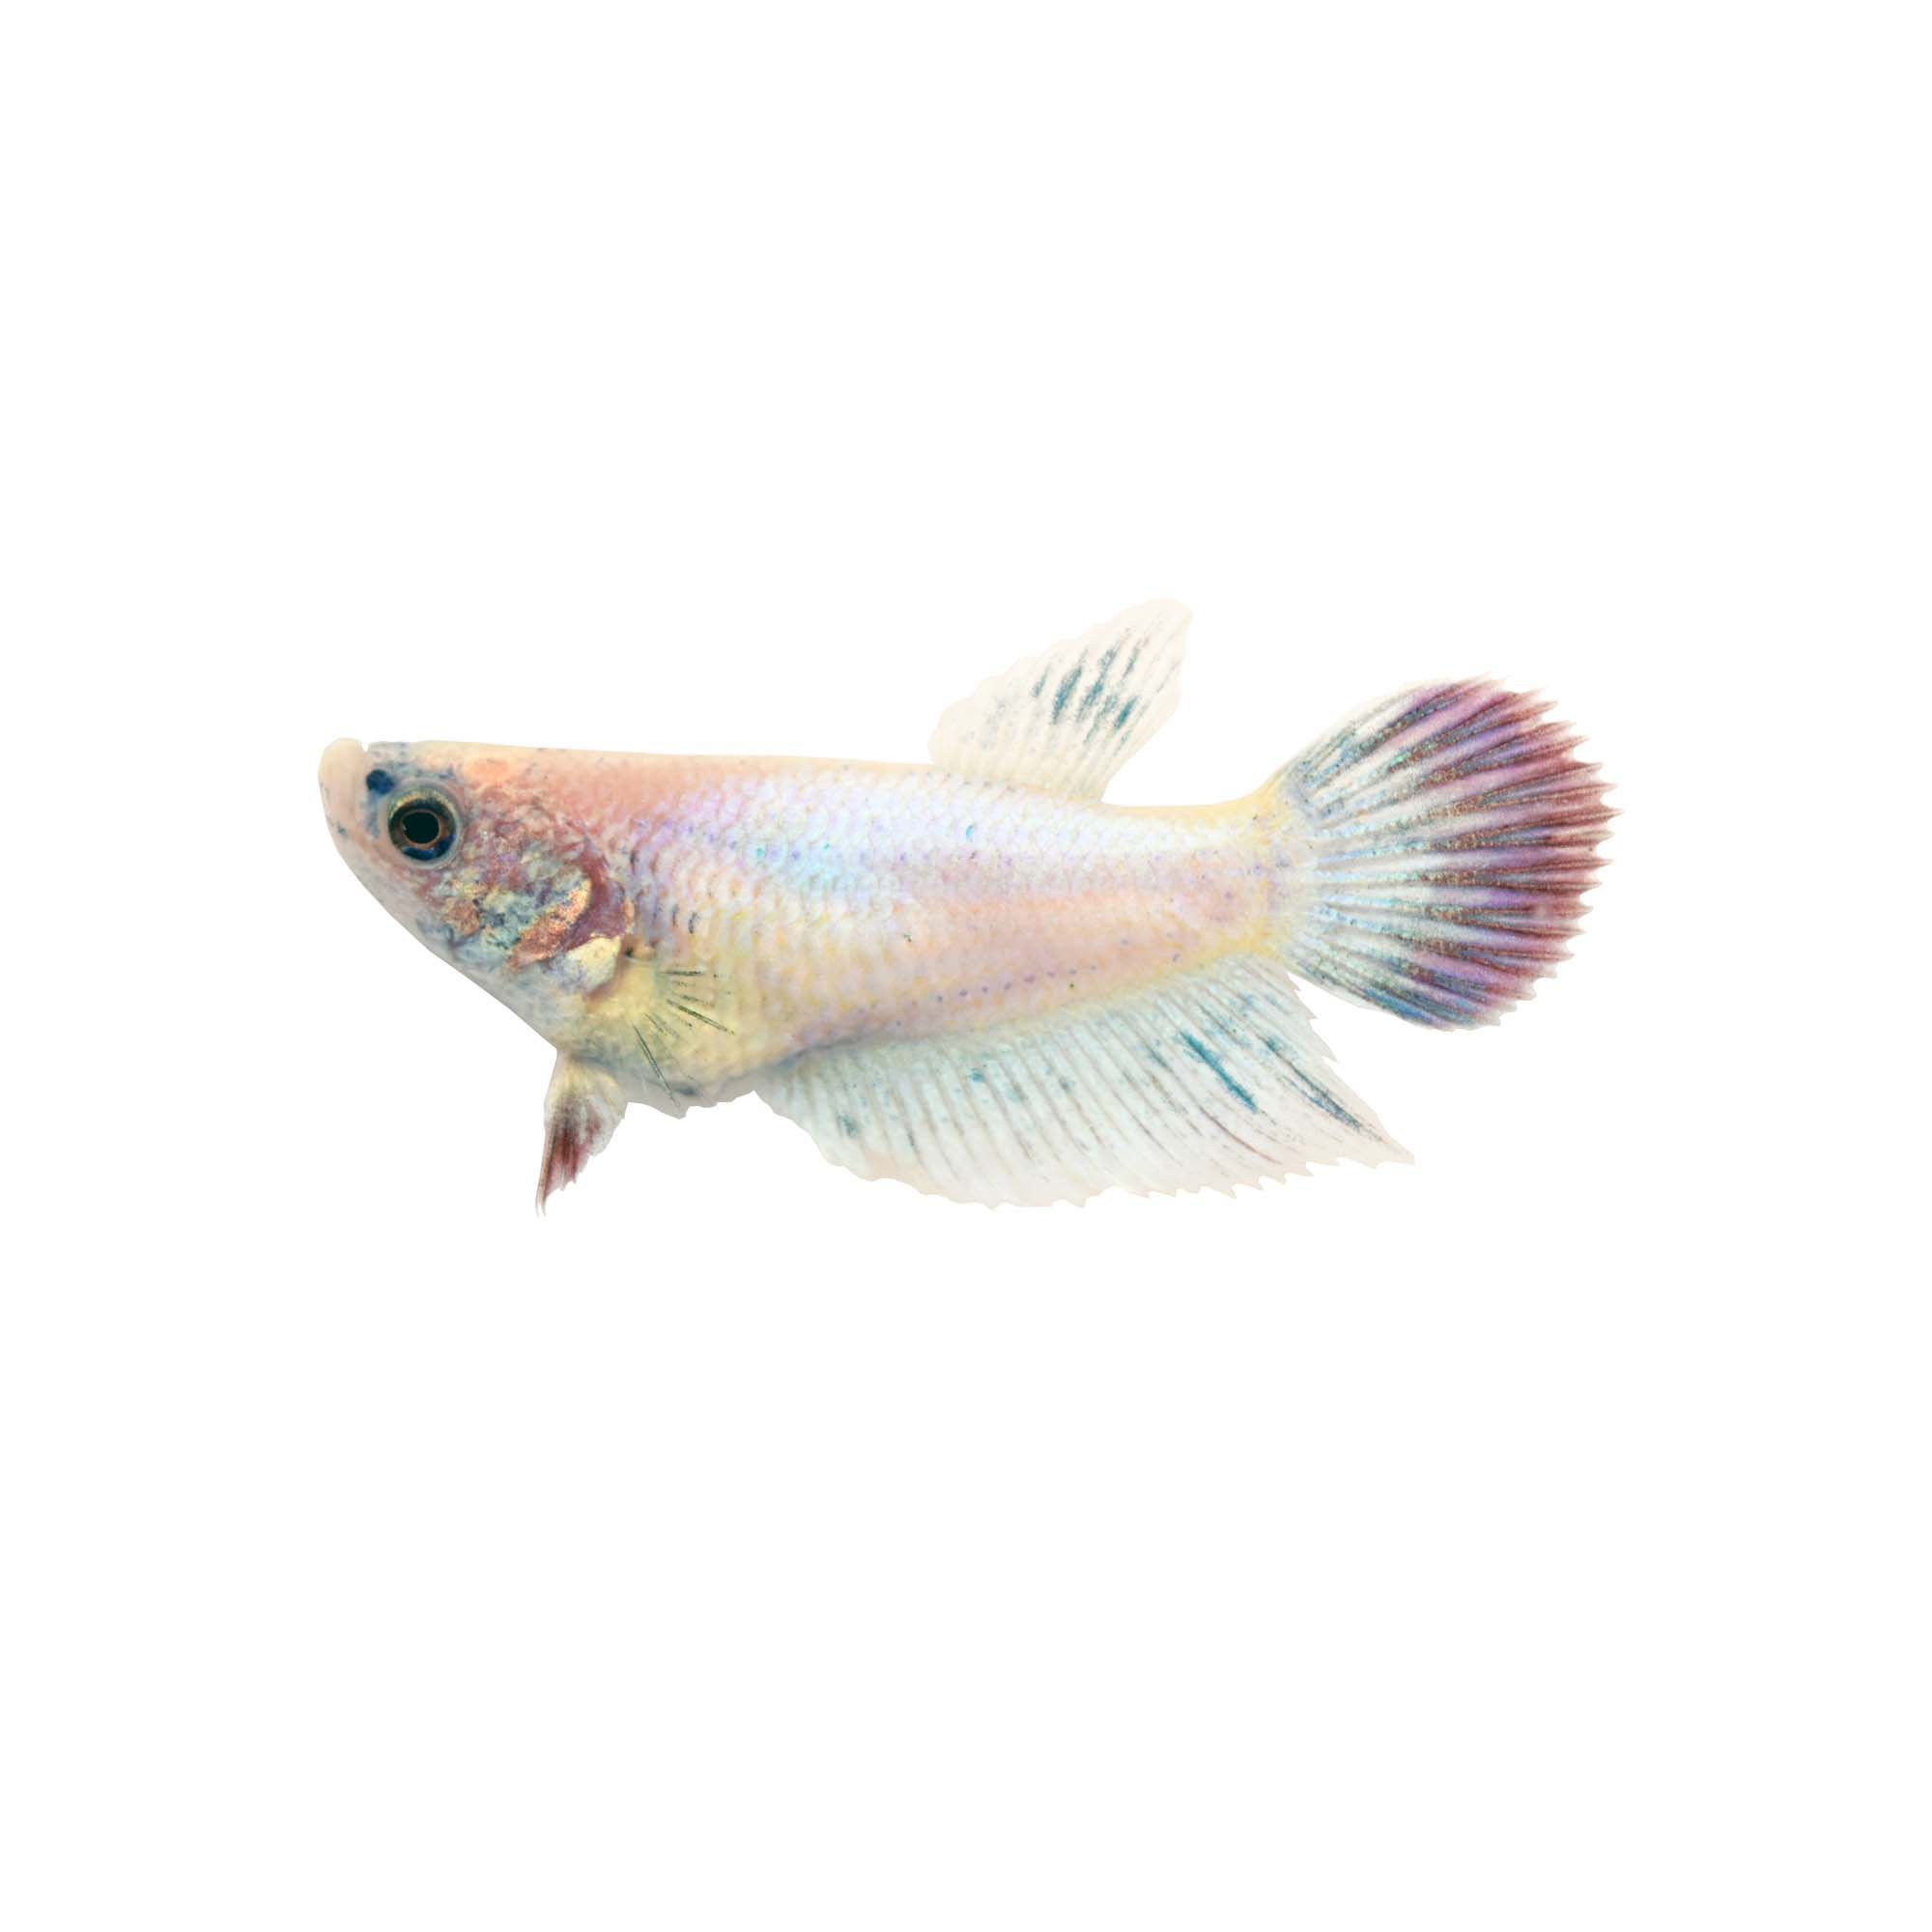 female veiltail betta fish siamese fighting fish extra